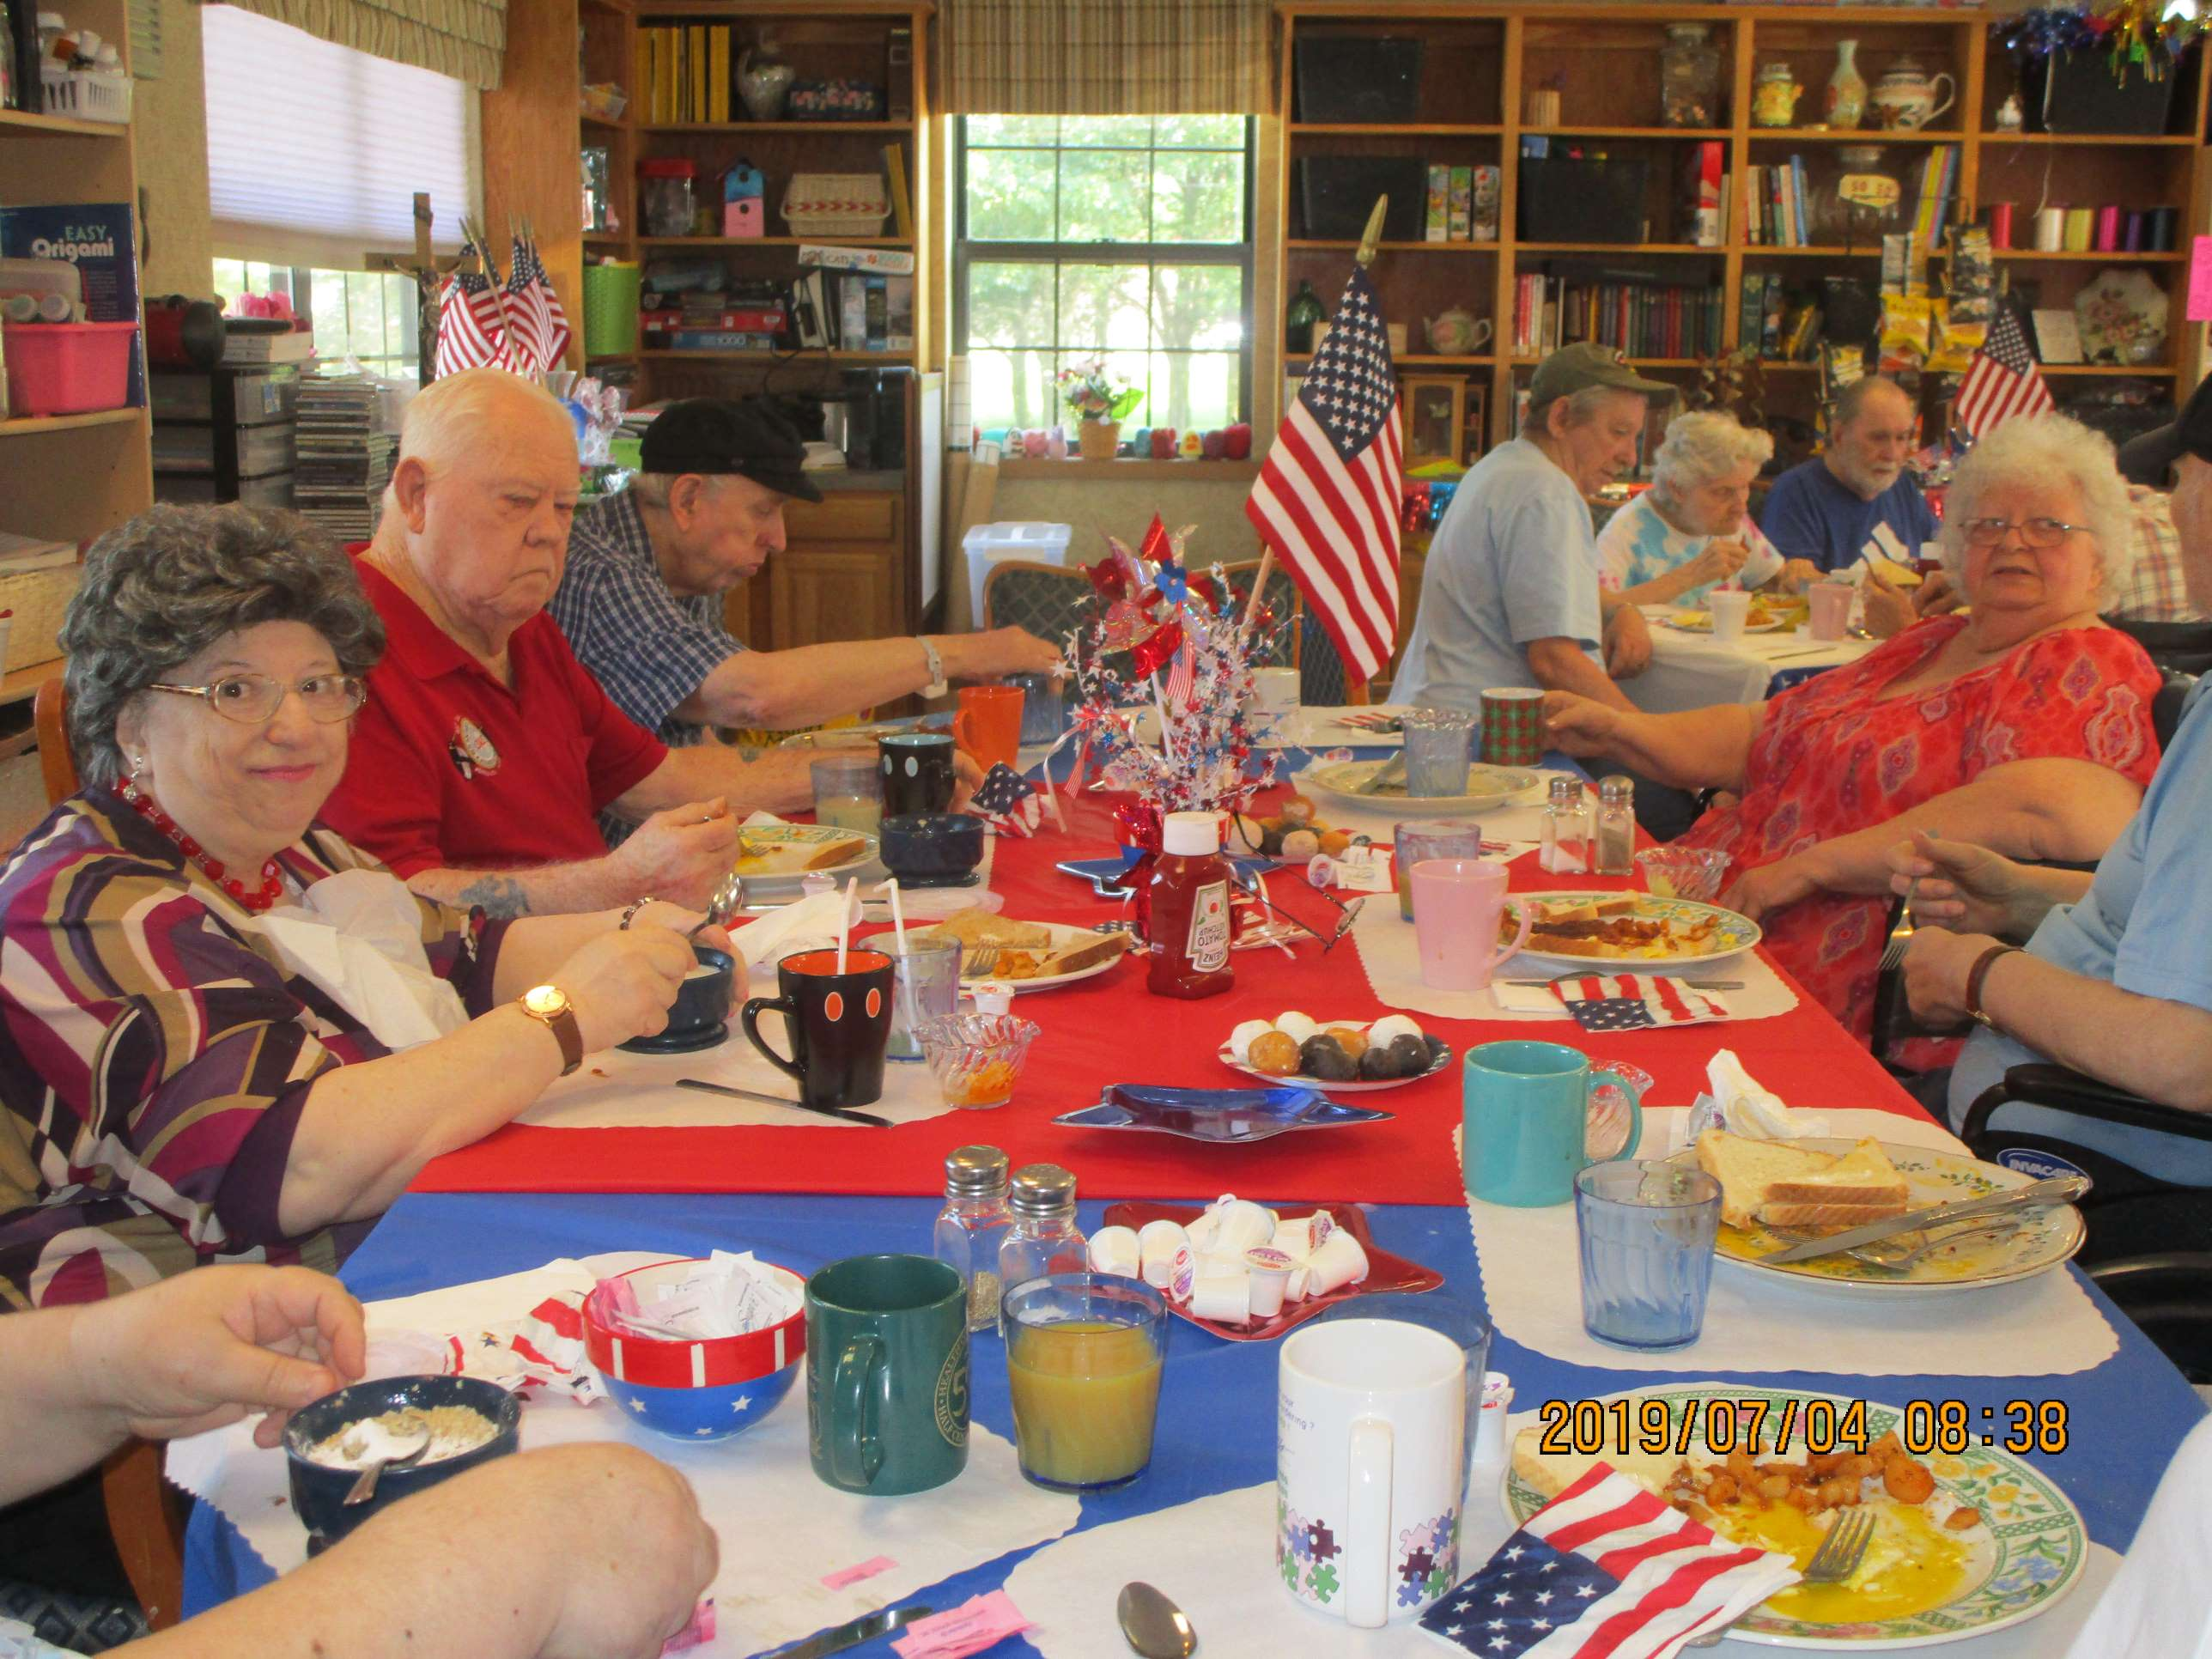 crystal lake rehab celebrate the 4th eating breakfast platters